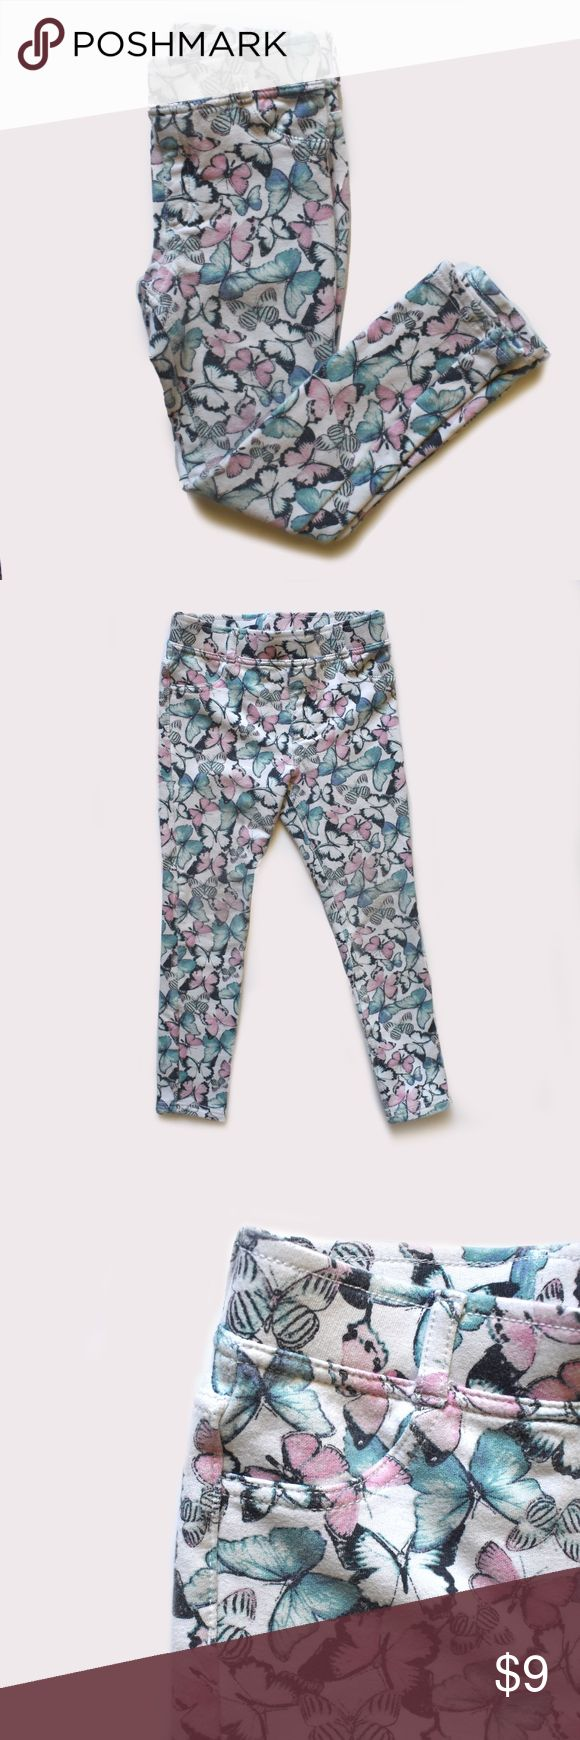 """H&M Patterned Treggings H&M 